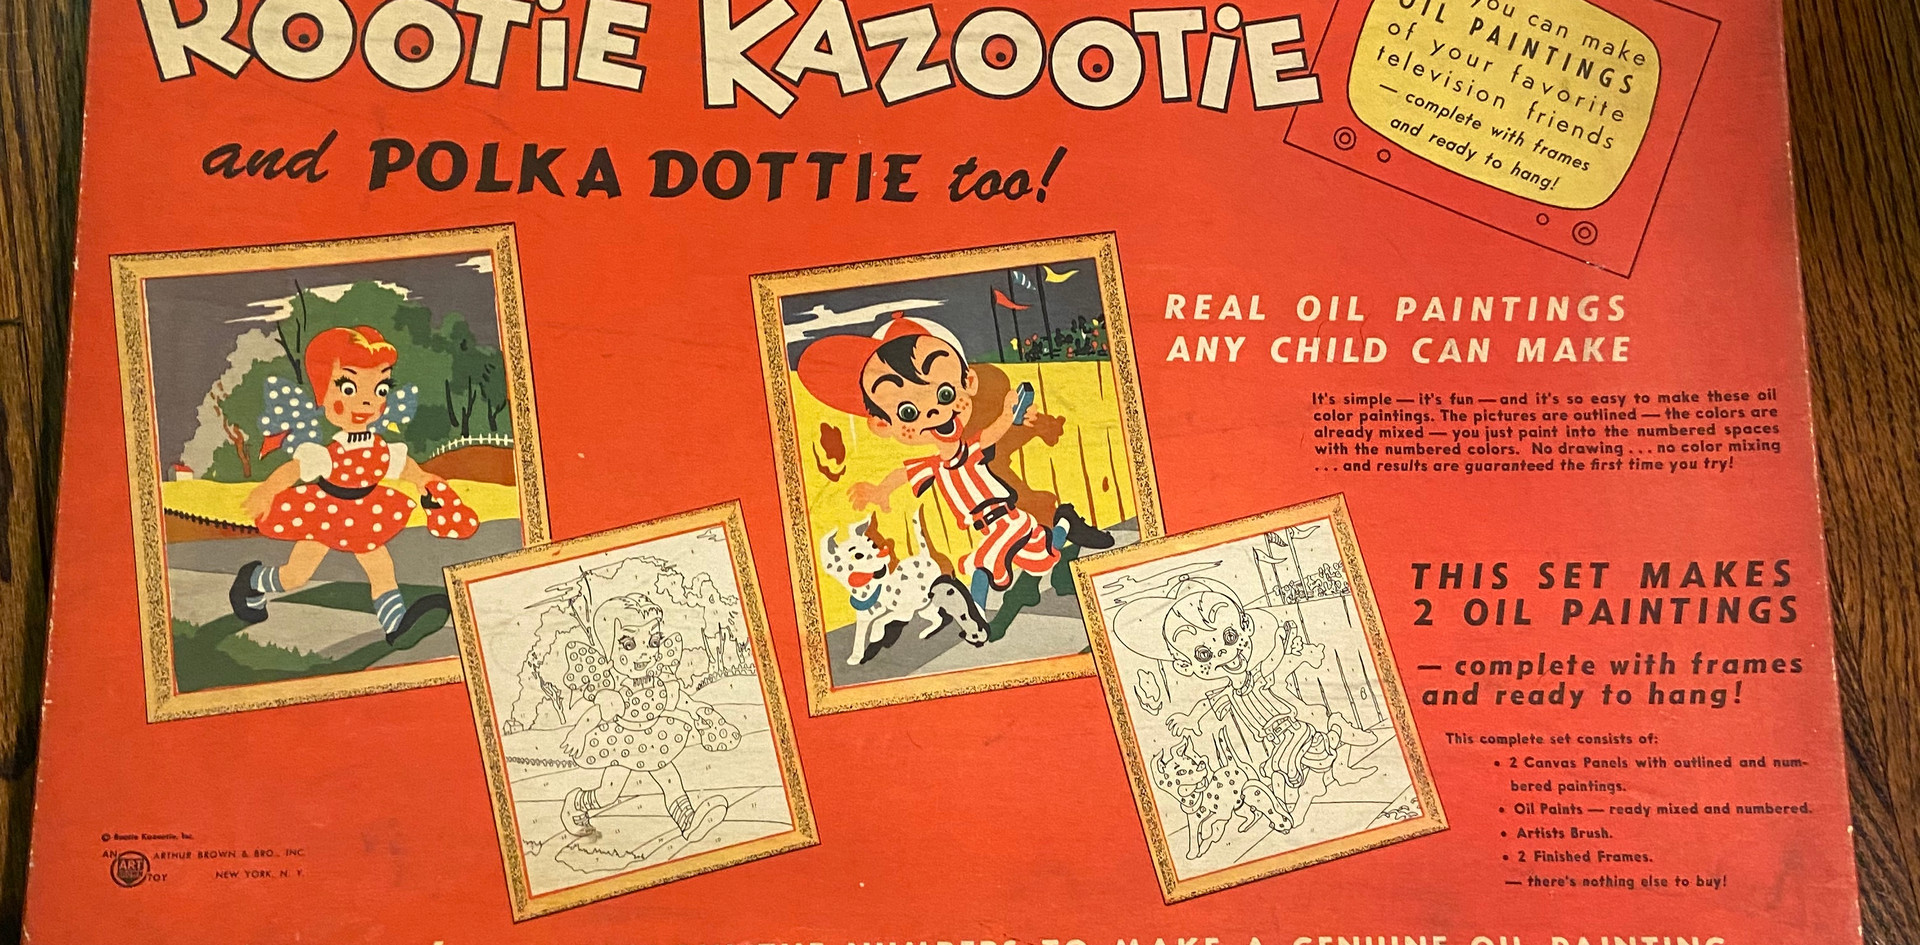 Rootie Kazootie Paint by Number Set